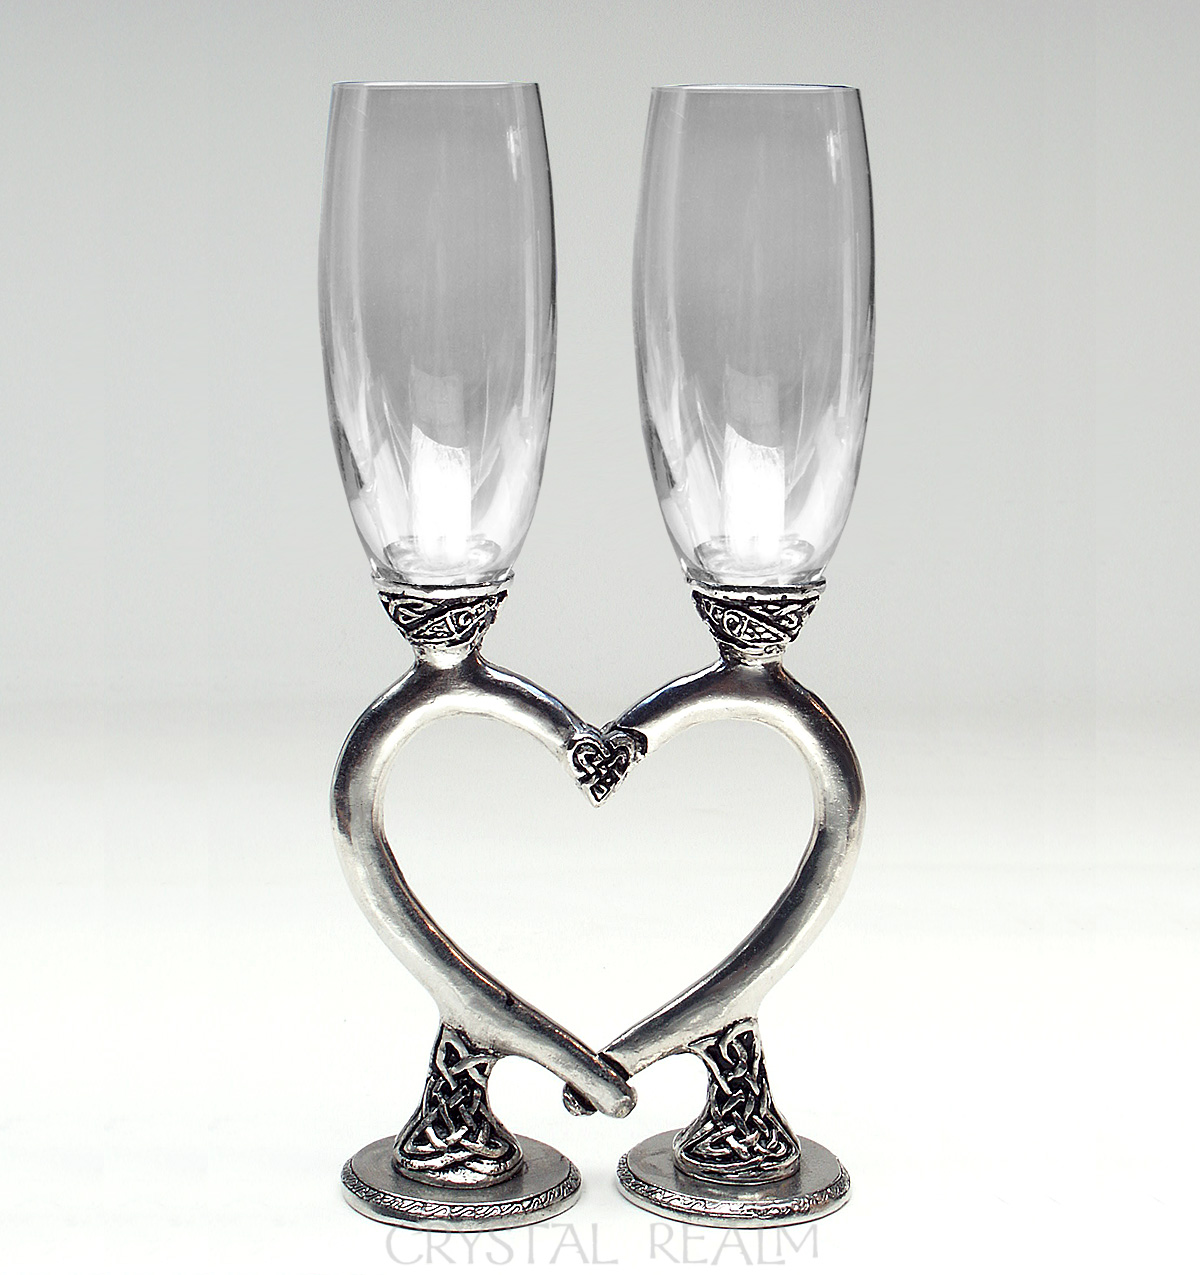 Clear toasting flutes with Celtic heart stems